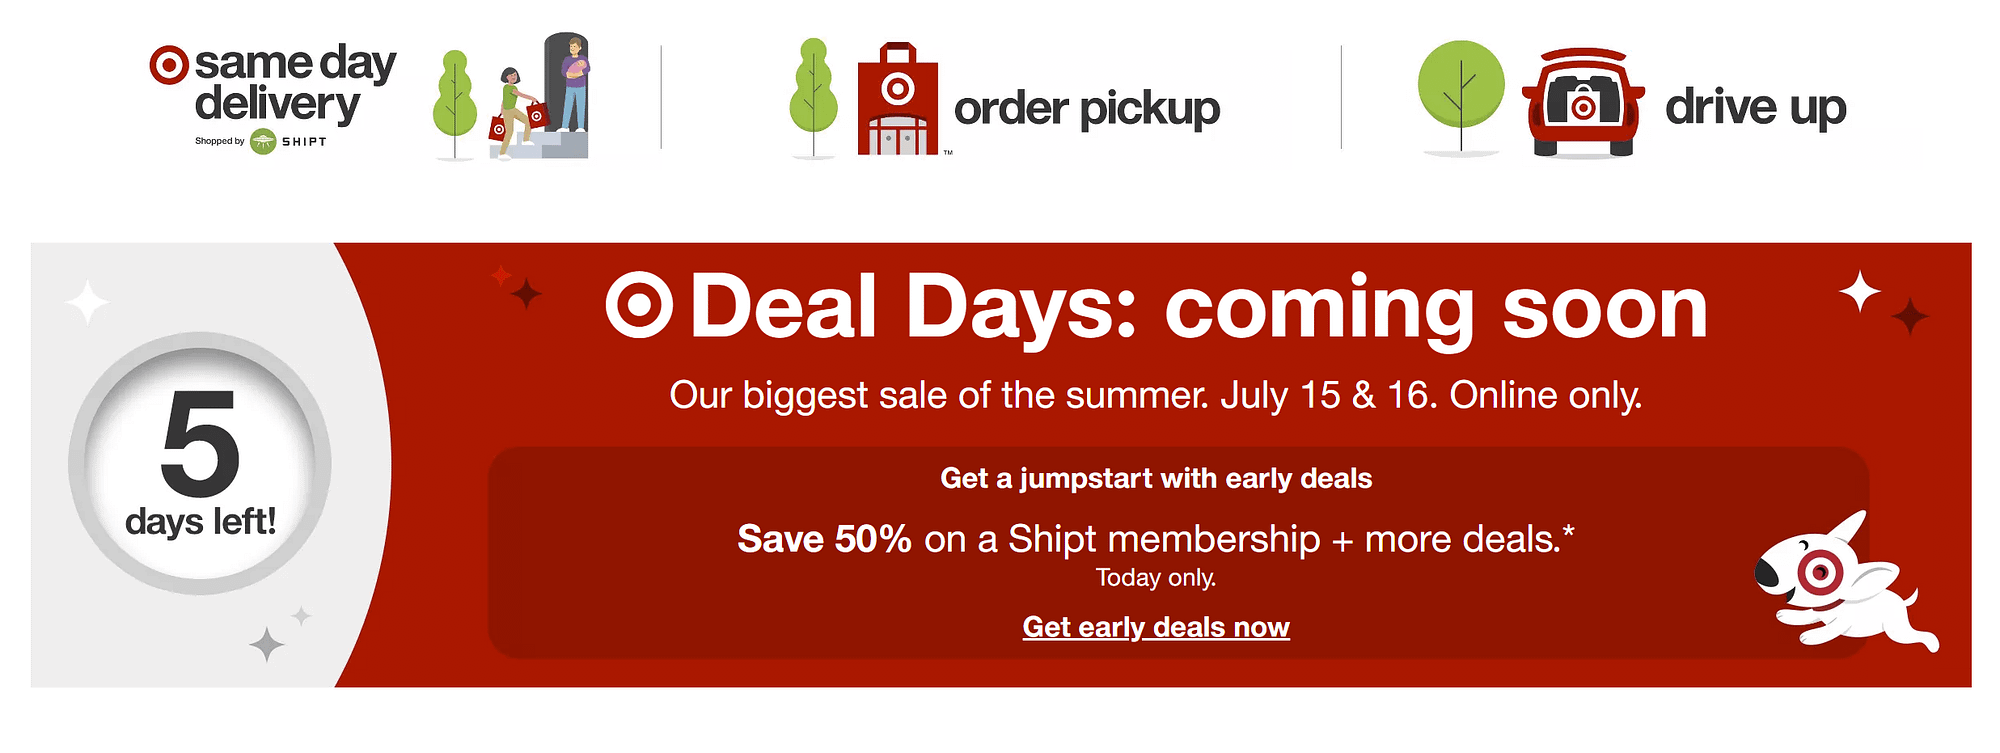 target deal day prime day competition promotion